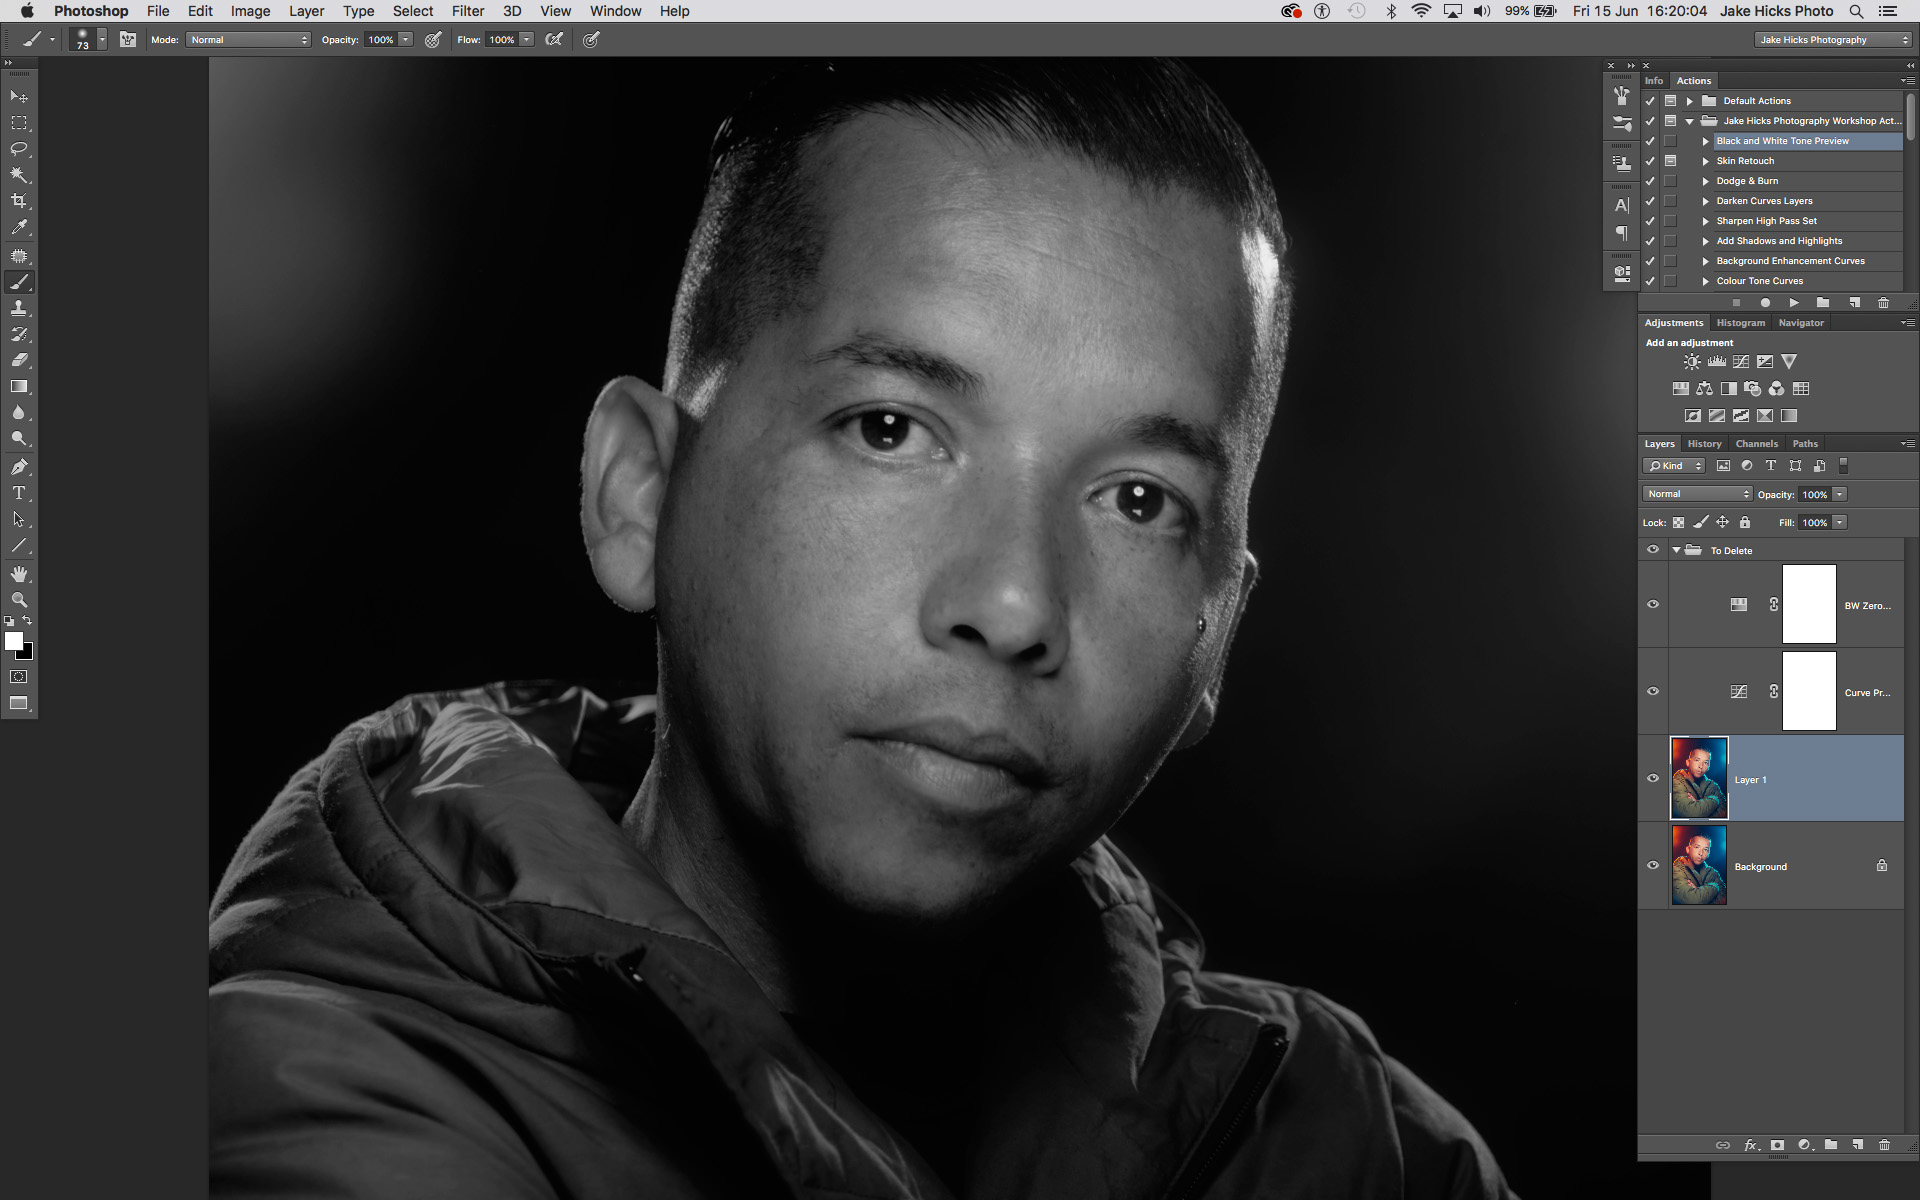 Un-retouched image with check preview layers added.